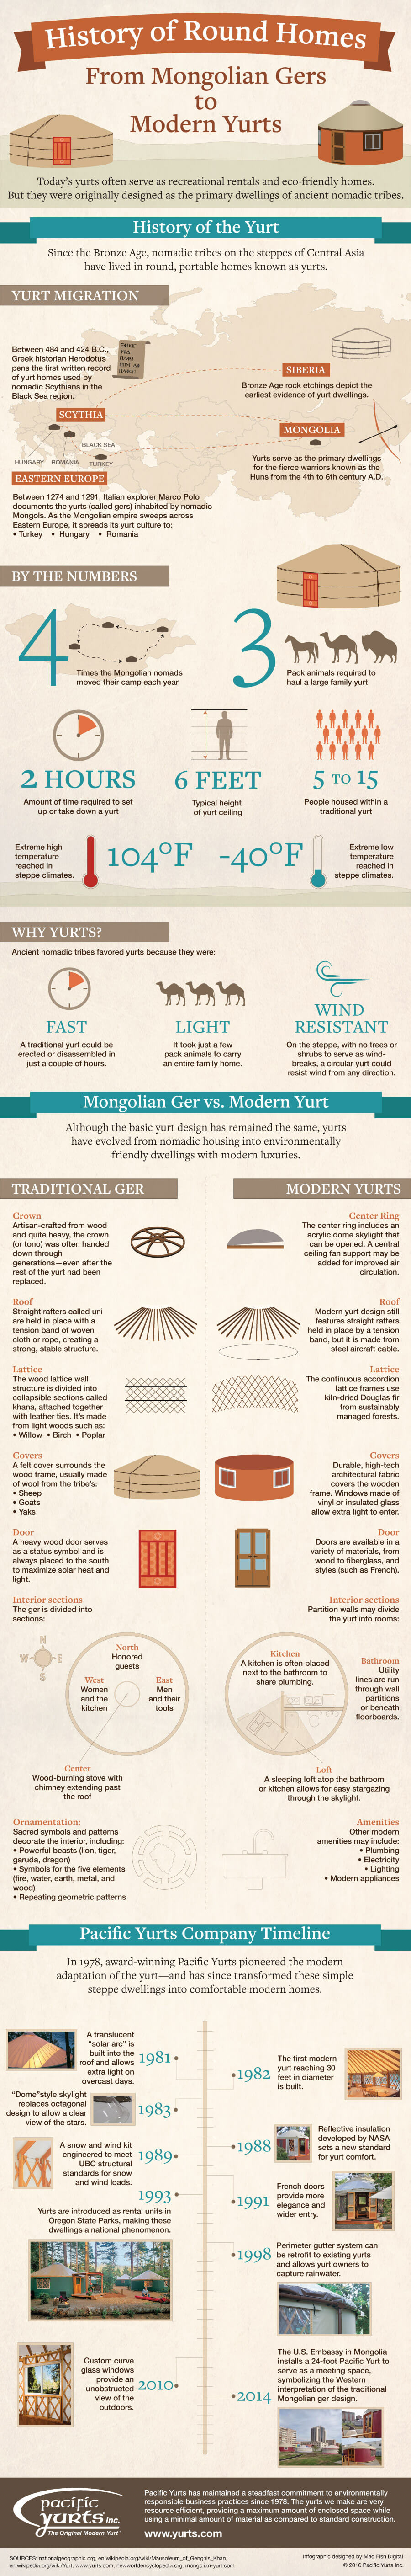 History of Round Homes: From Mongolian Gers to Modern Yurts